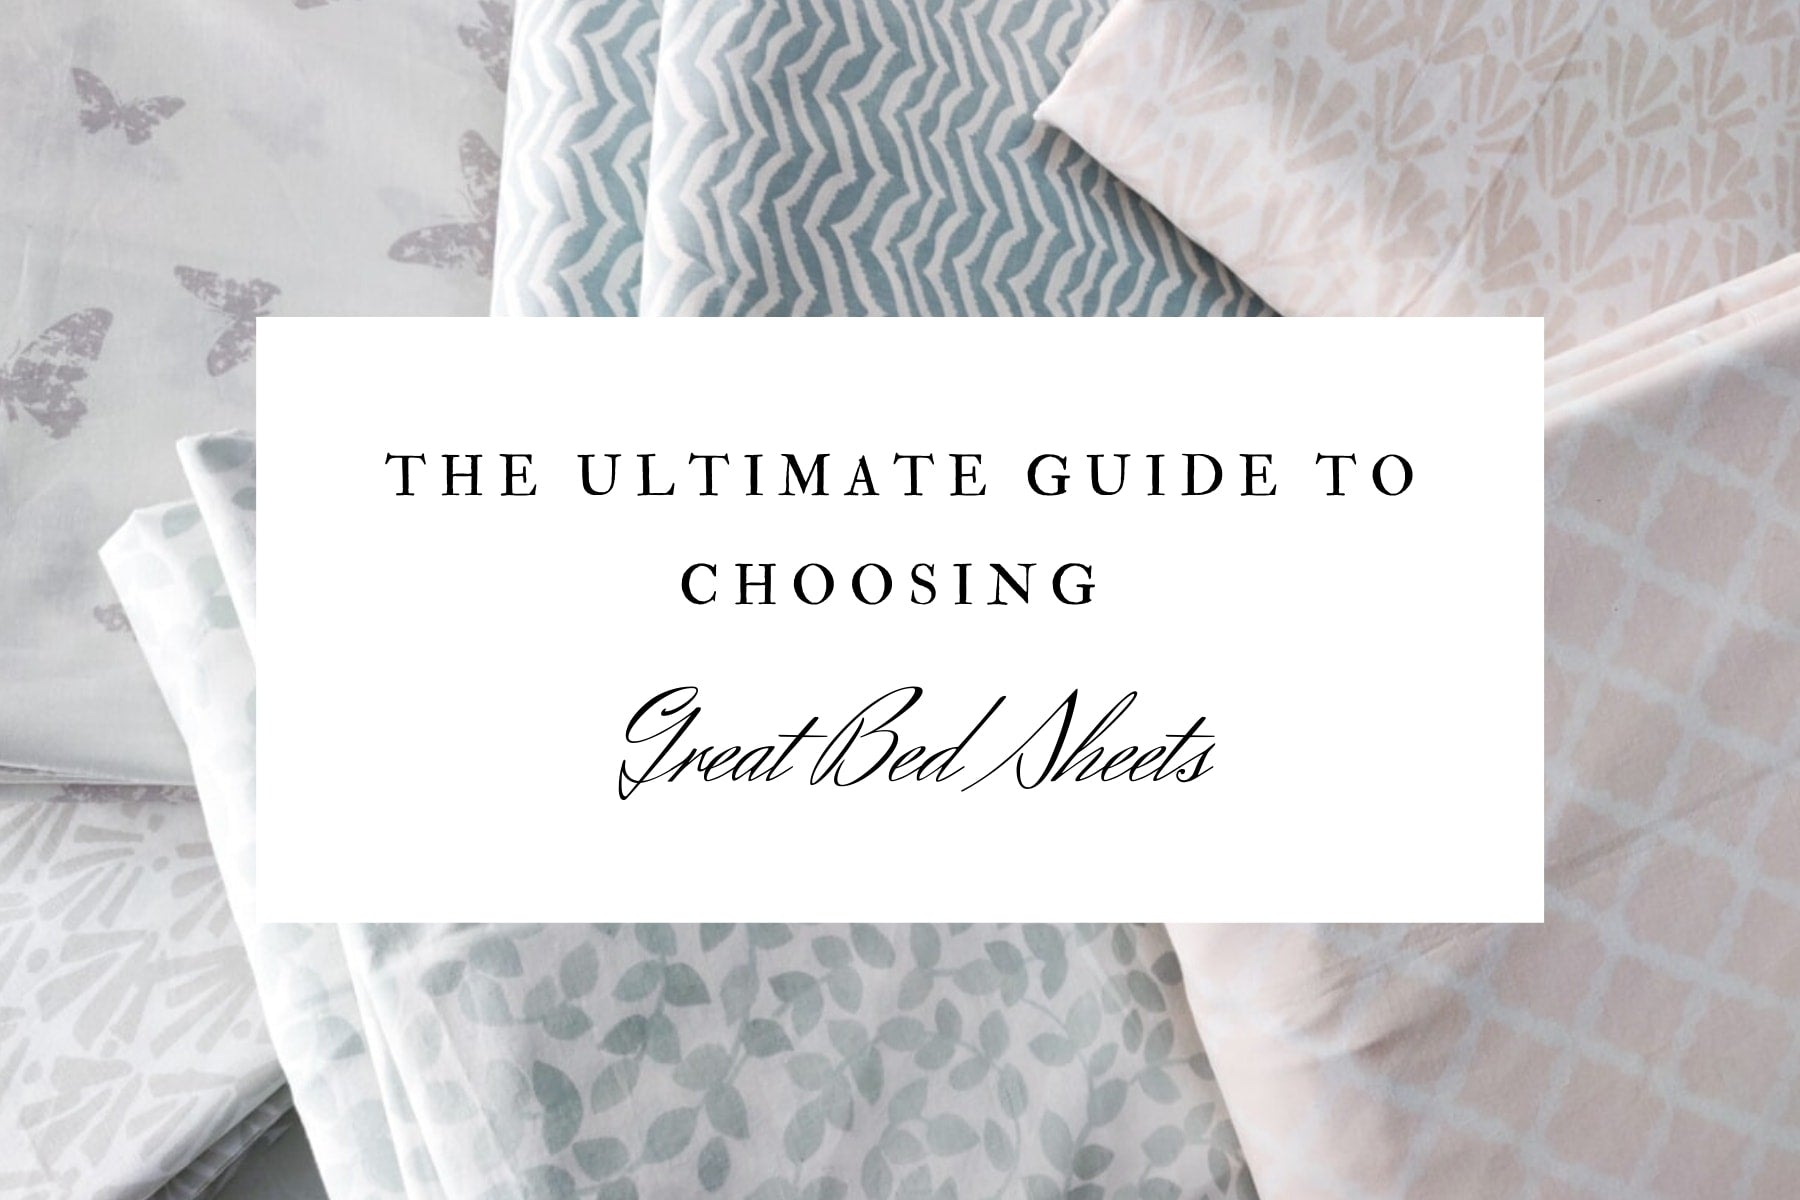 The Ultimate Guide to Choosing Great Bed Sheets